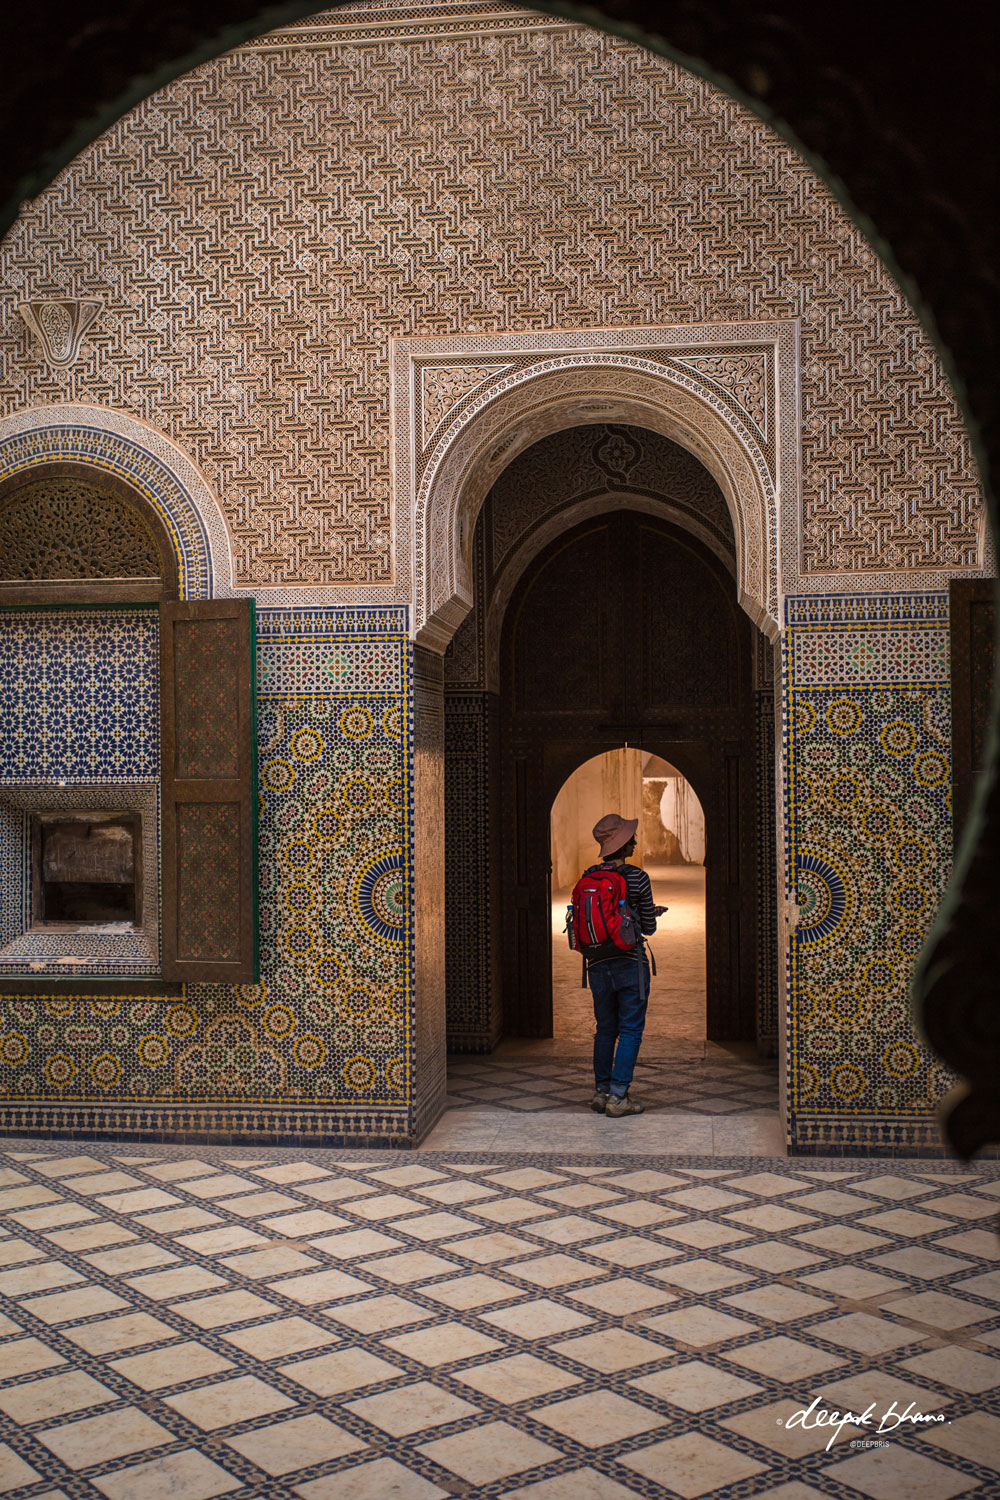 the-Telouet_Kasbah-Morocco-inside-arches